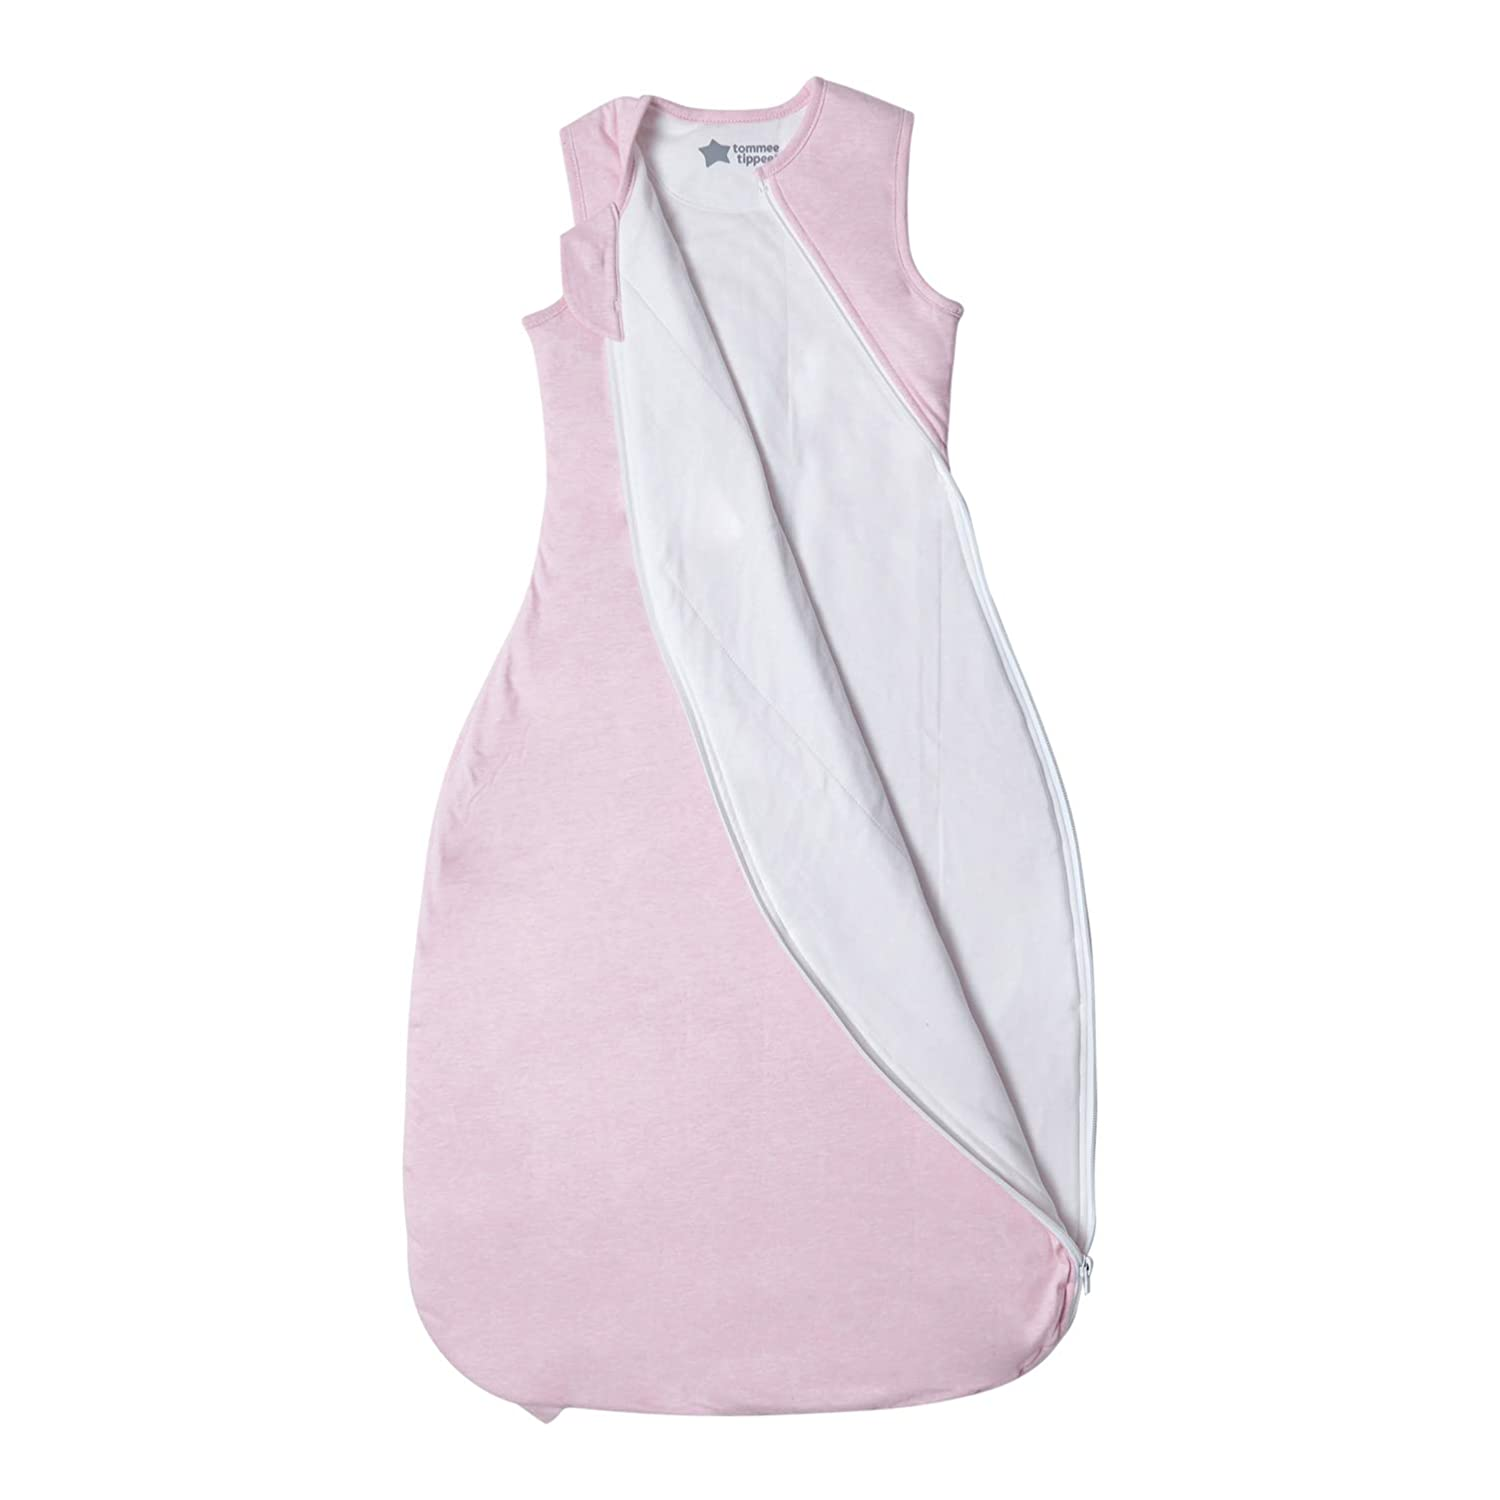 Tommee Tippee Grobag Baby-Schlafsack